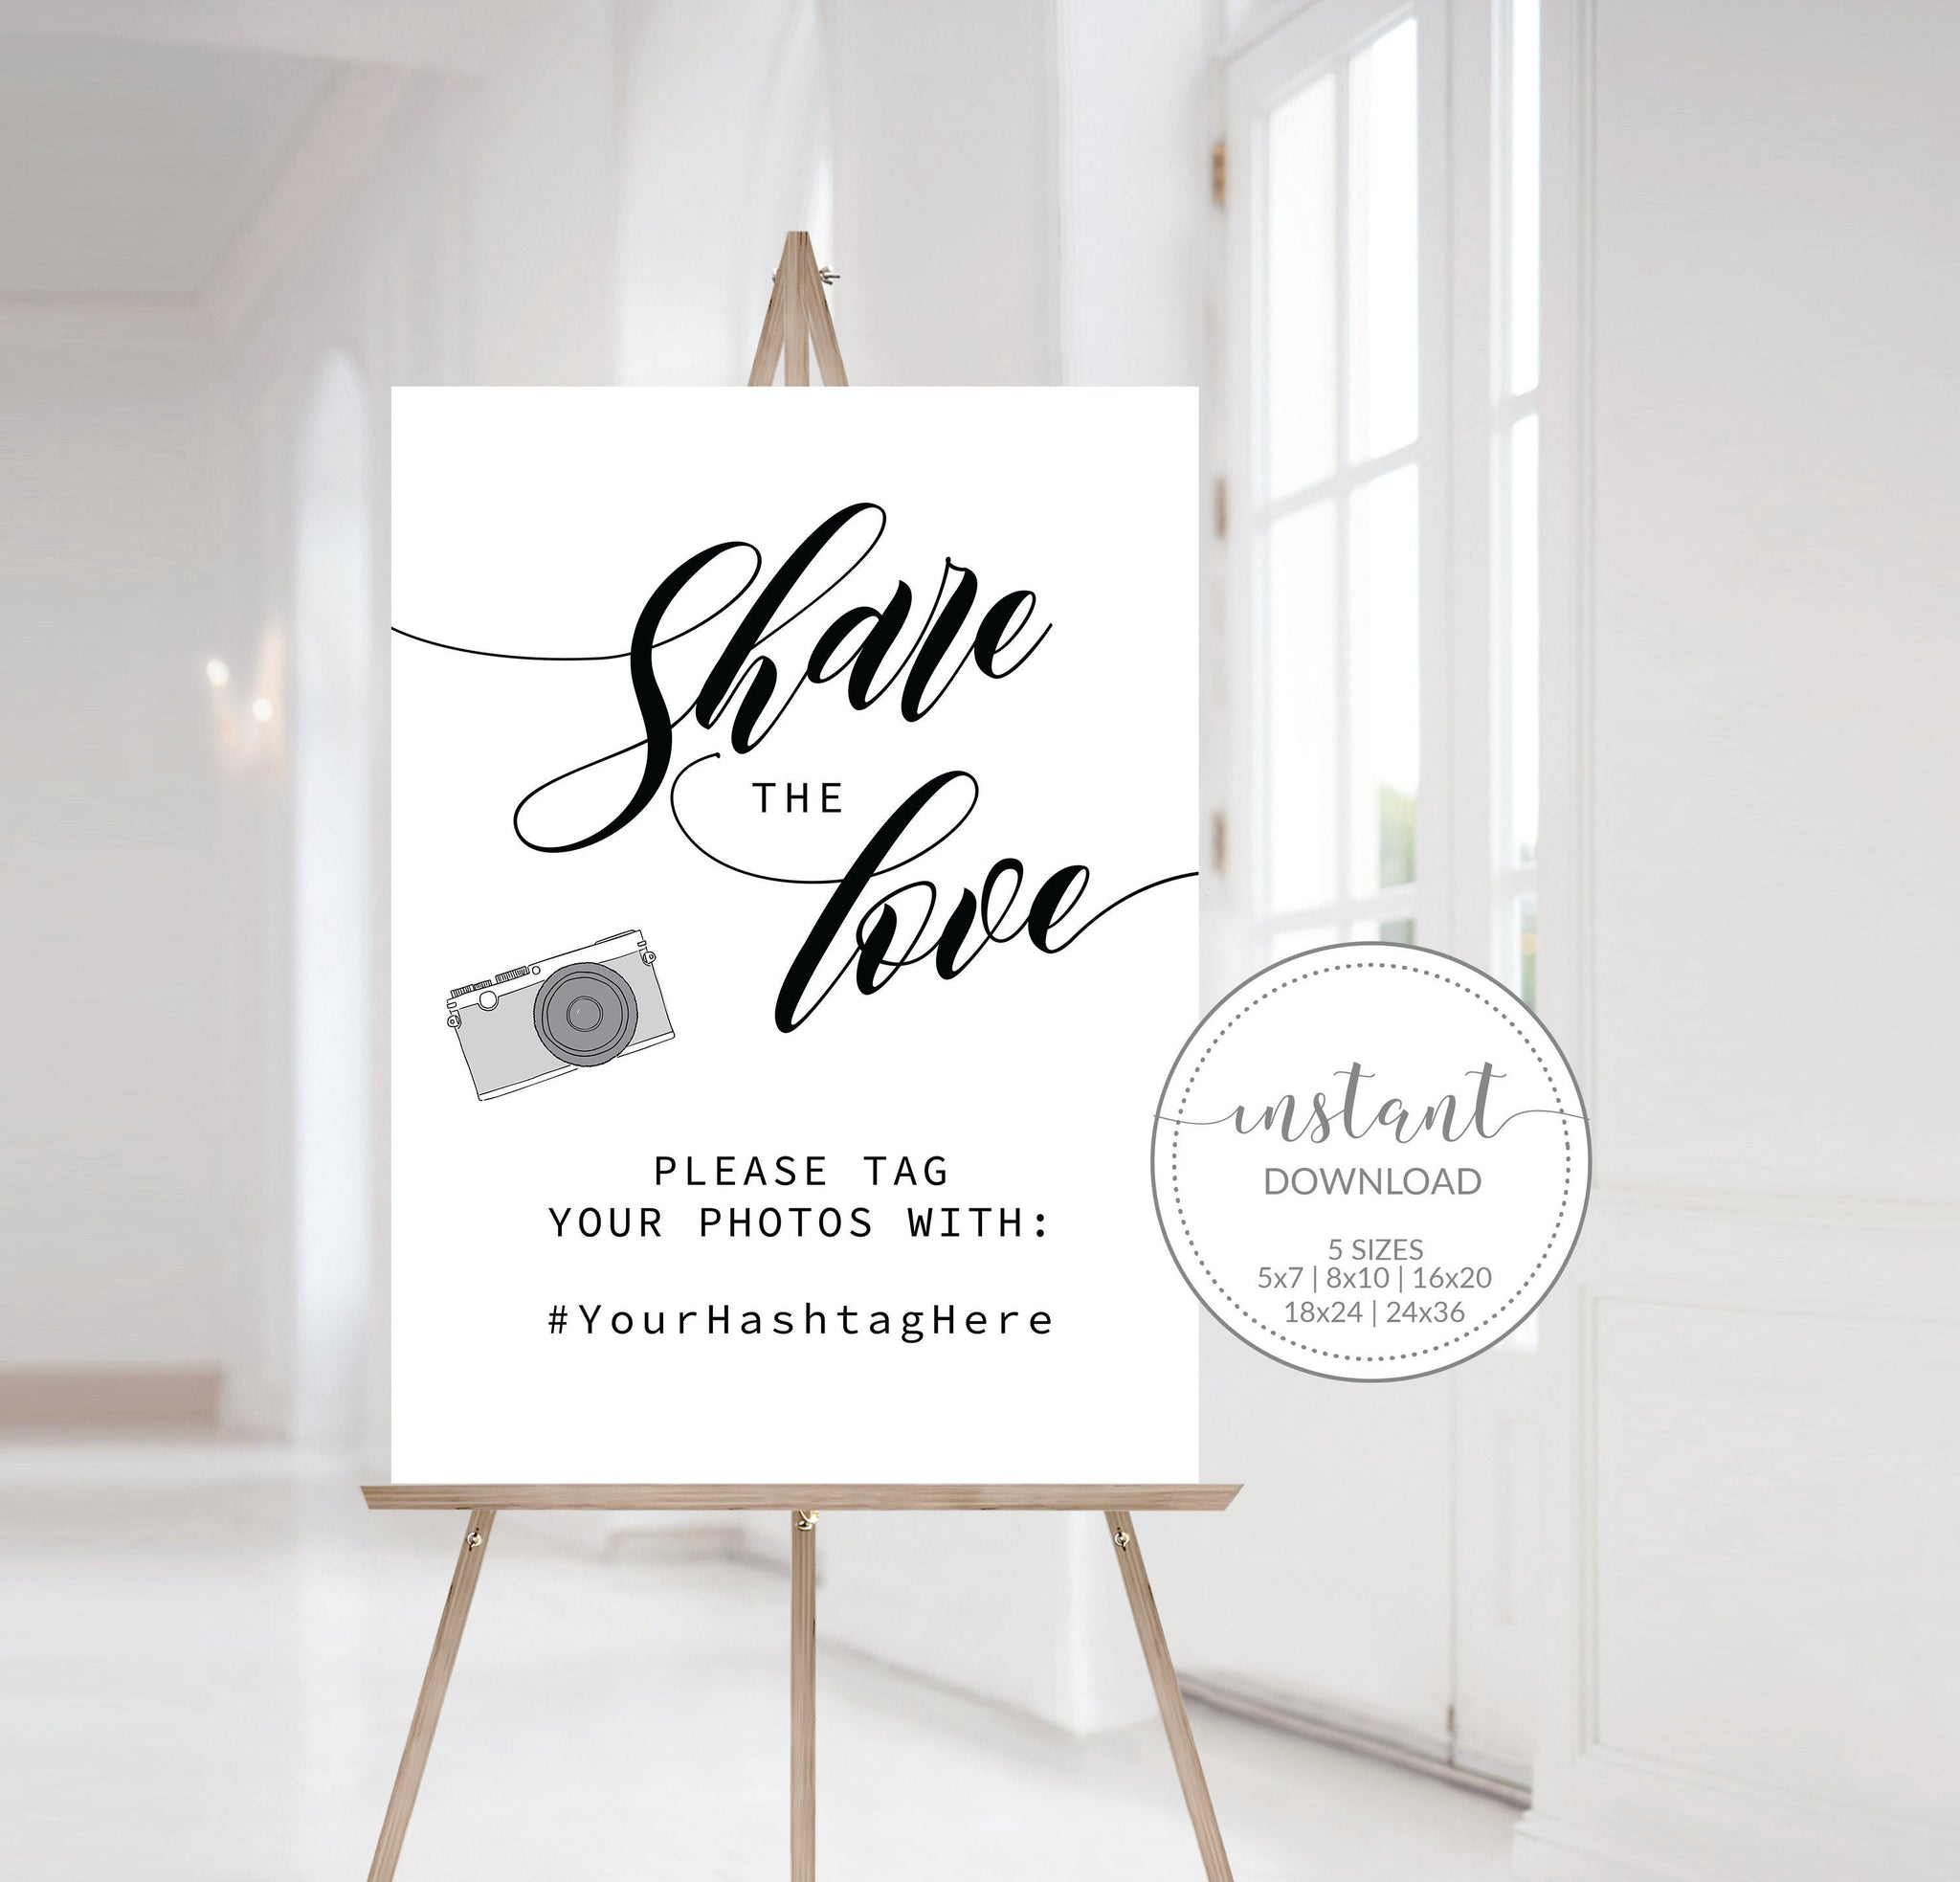 Wedding Hashtag Sign Template, Wedding Hashtag Printable, Share The Love Template, Wedding Hashtag Sign DIGITAL DOWNLOAD - SFB100 - @PlumPolkaDot